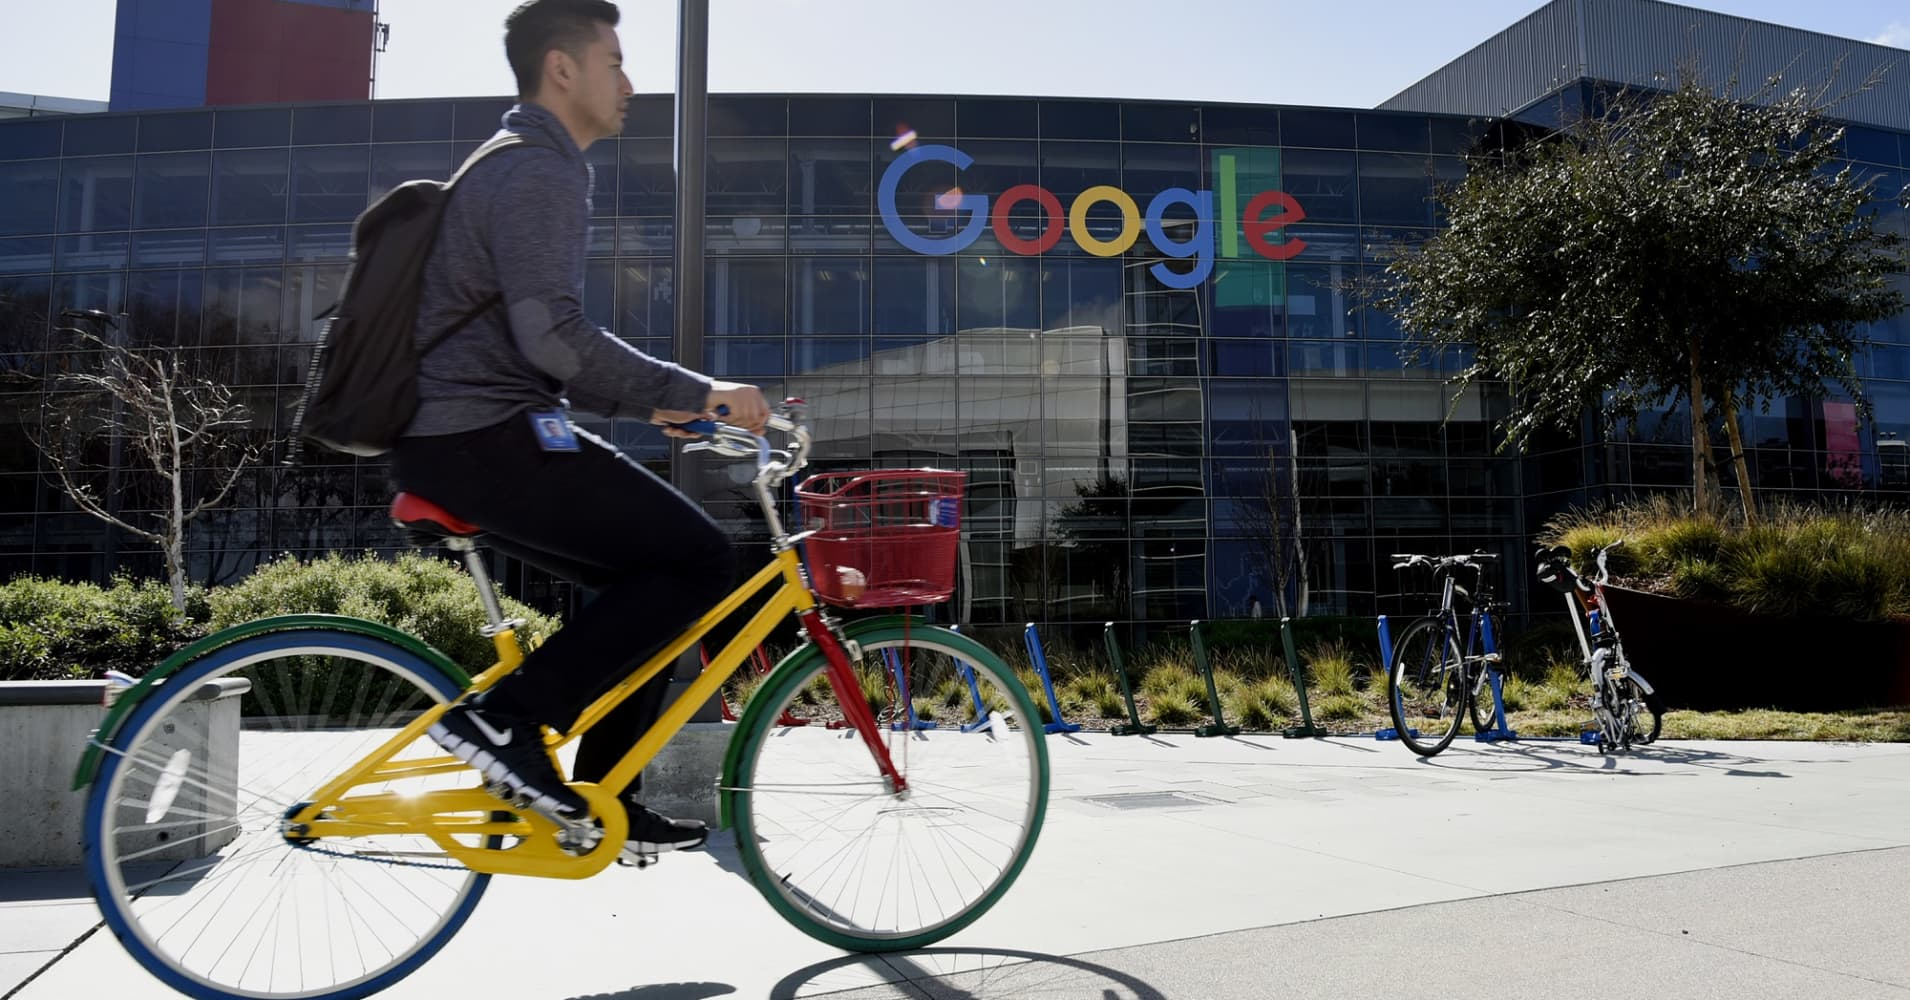 A cyclist rides past Google Inc. offices inside the Googleplex headquarters in Mountain View, California.